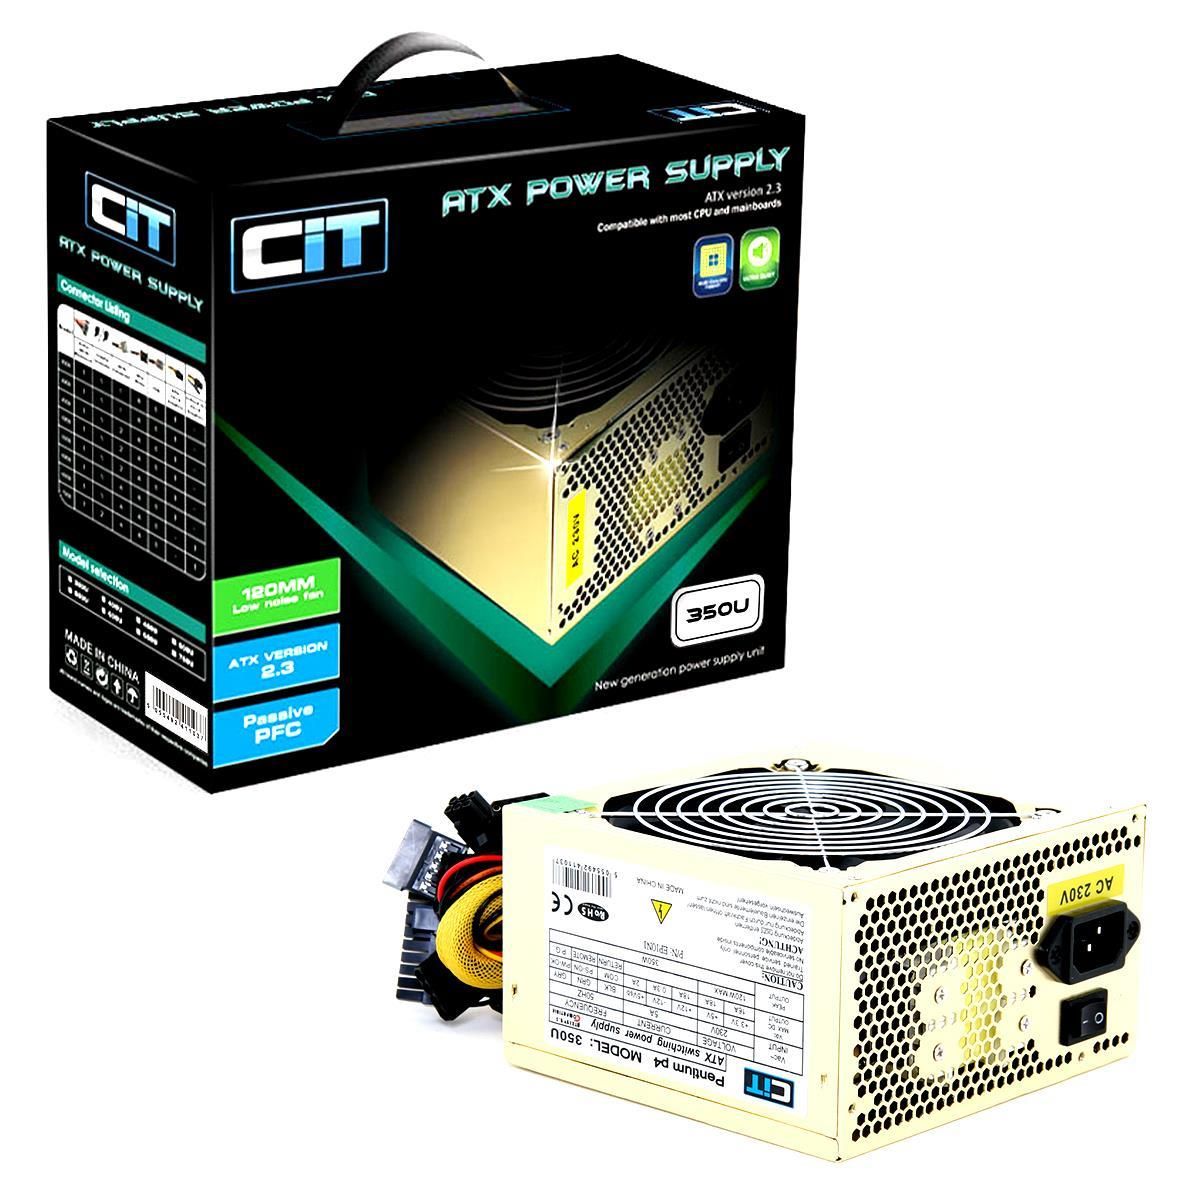 Cit 350W Gold Edition PSU